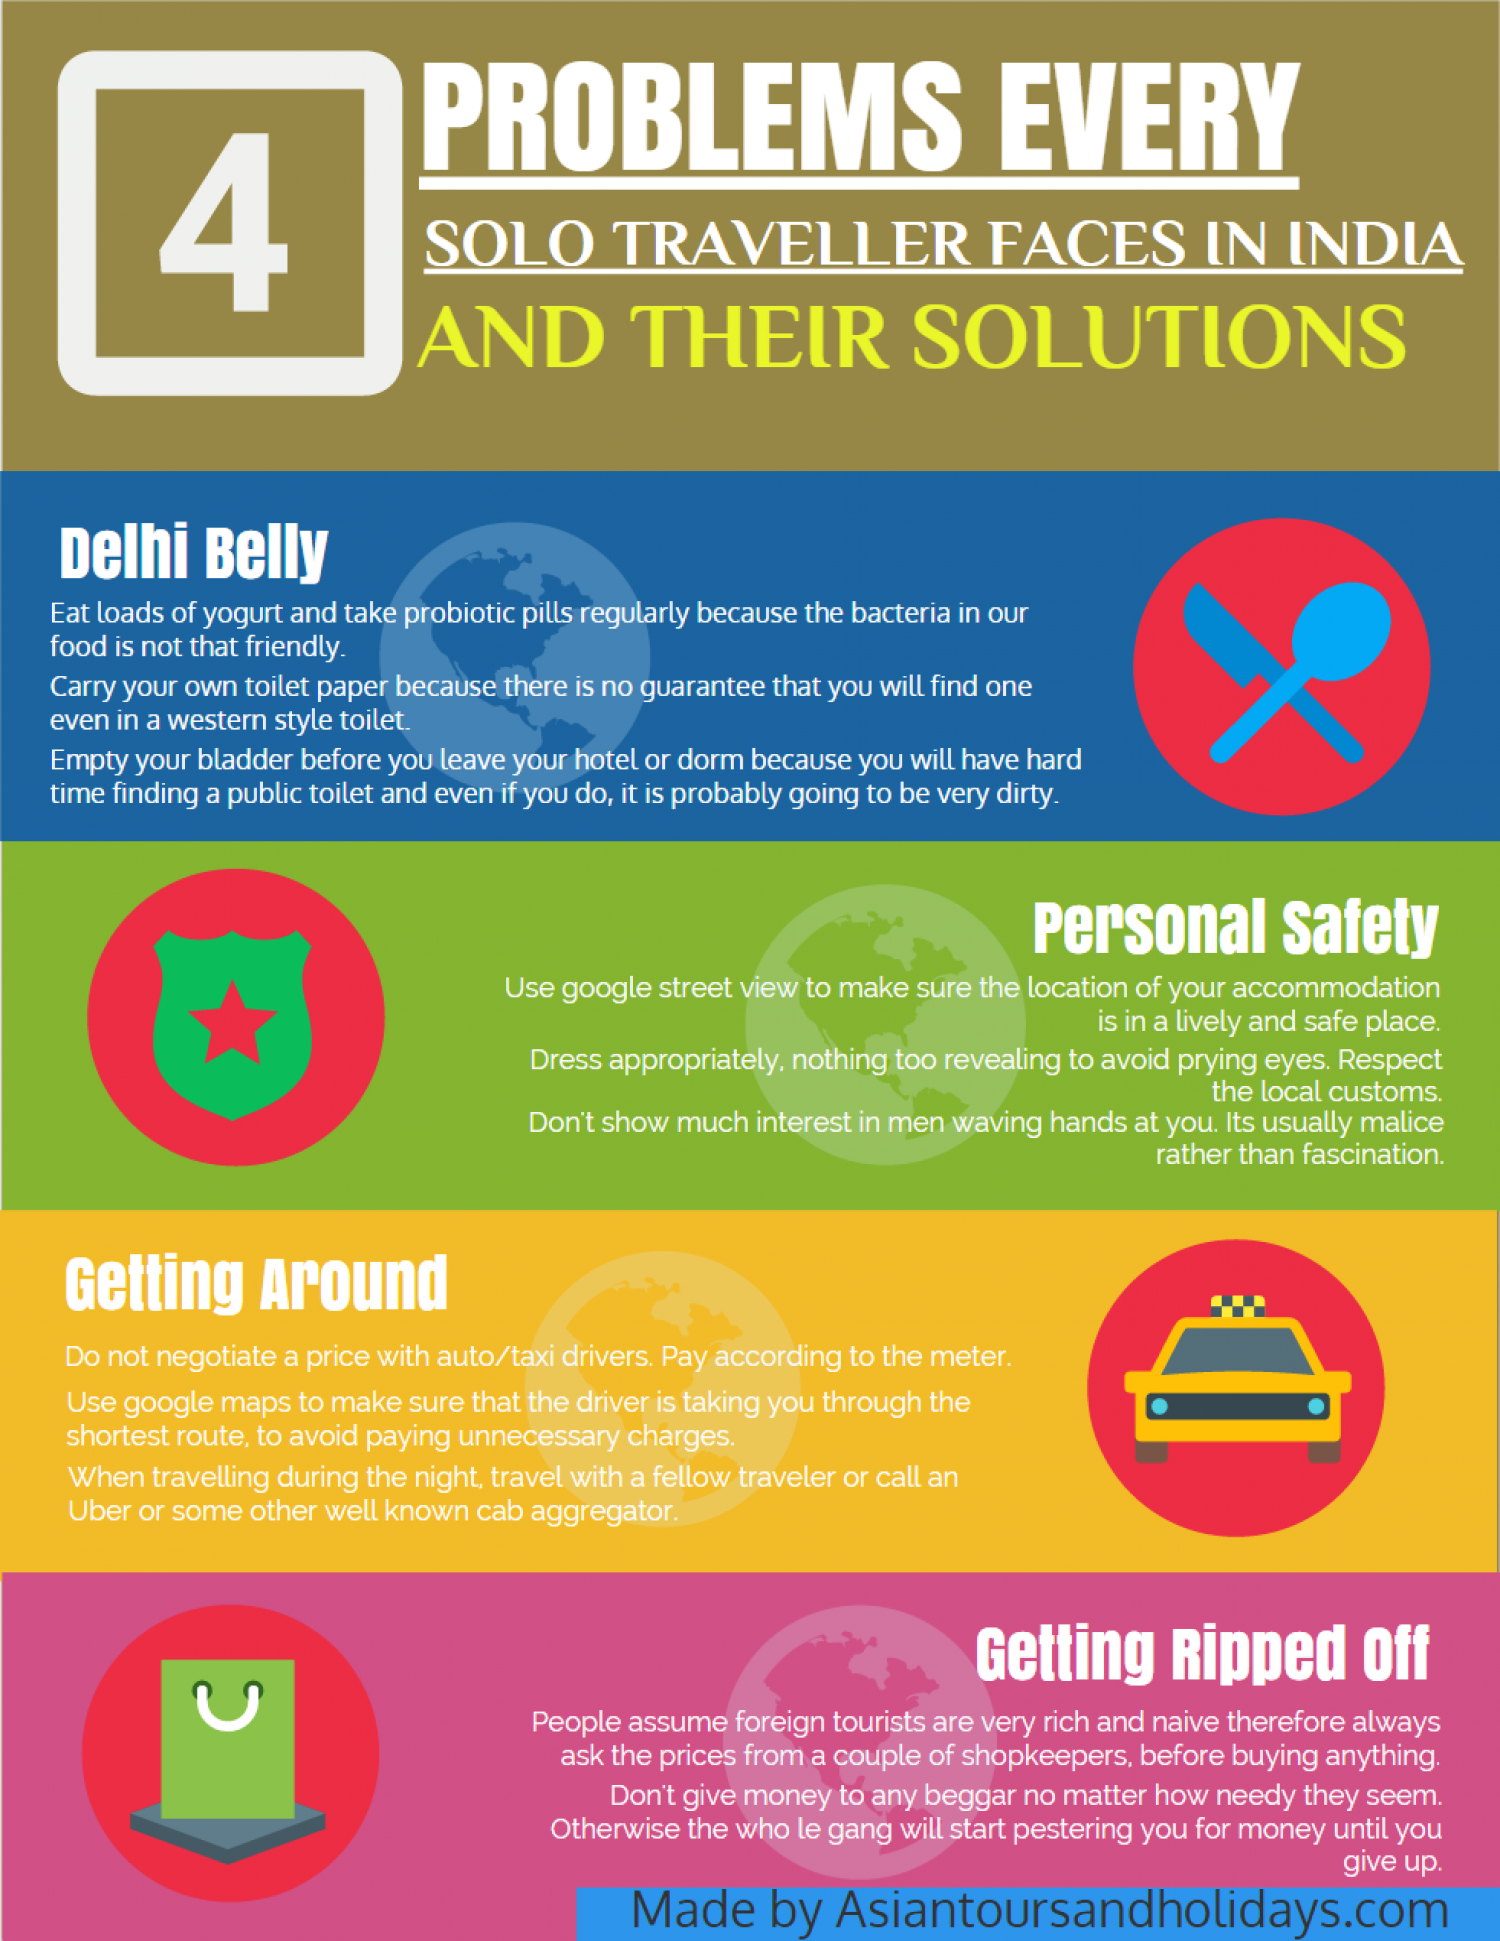 4 Problems travelers face in India ( and their solutions ) Infographic